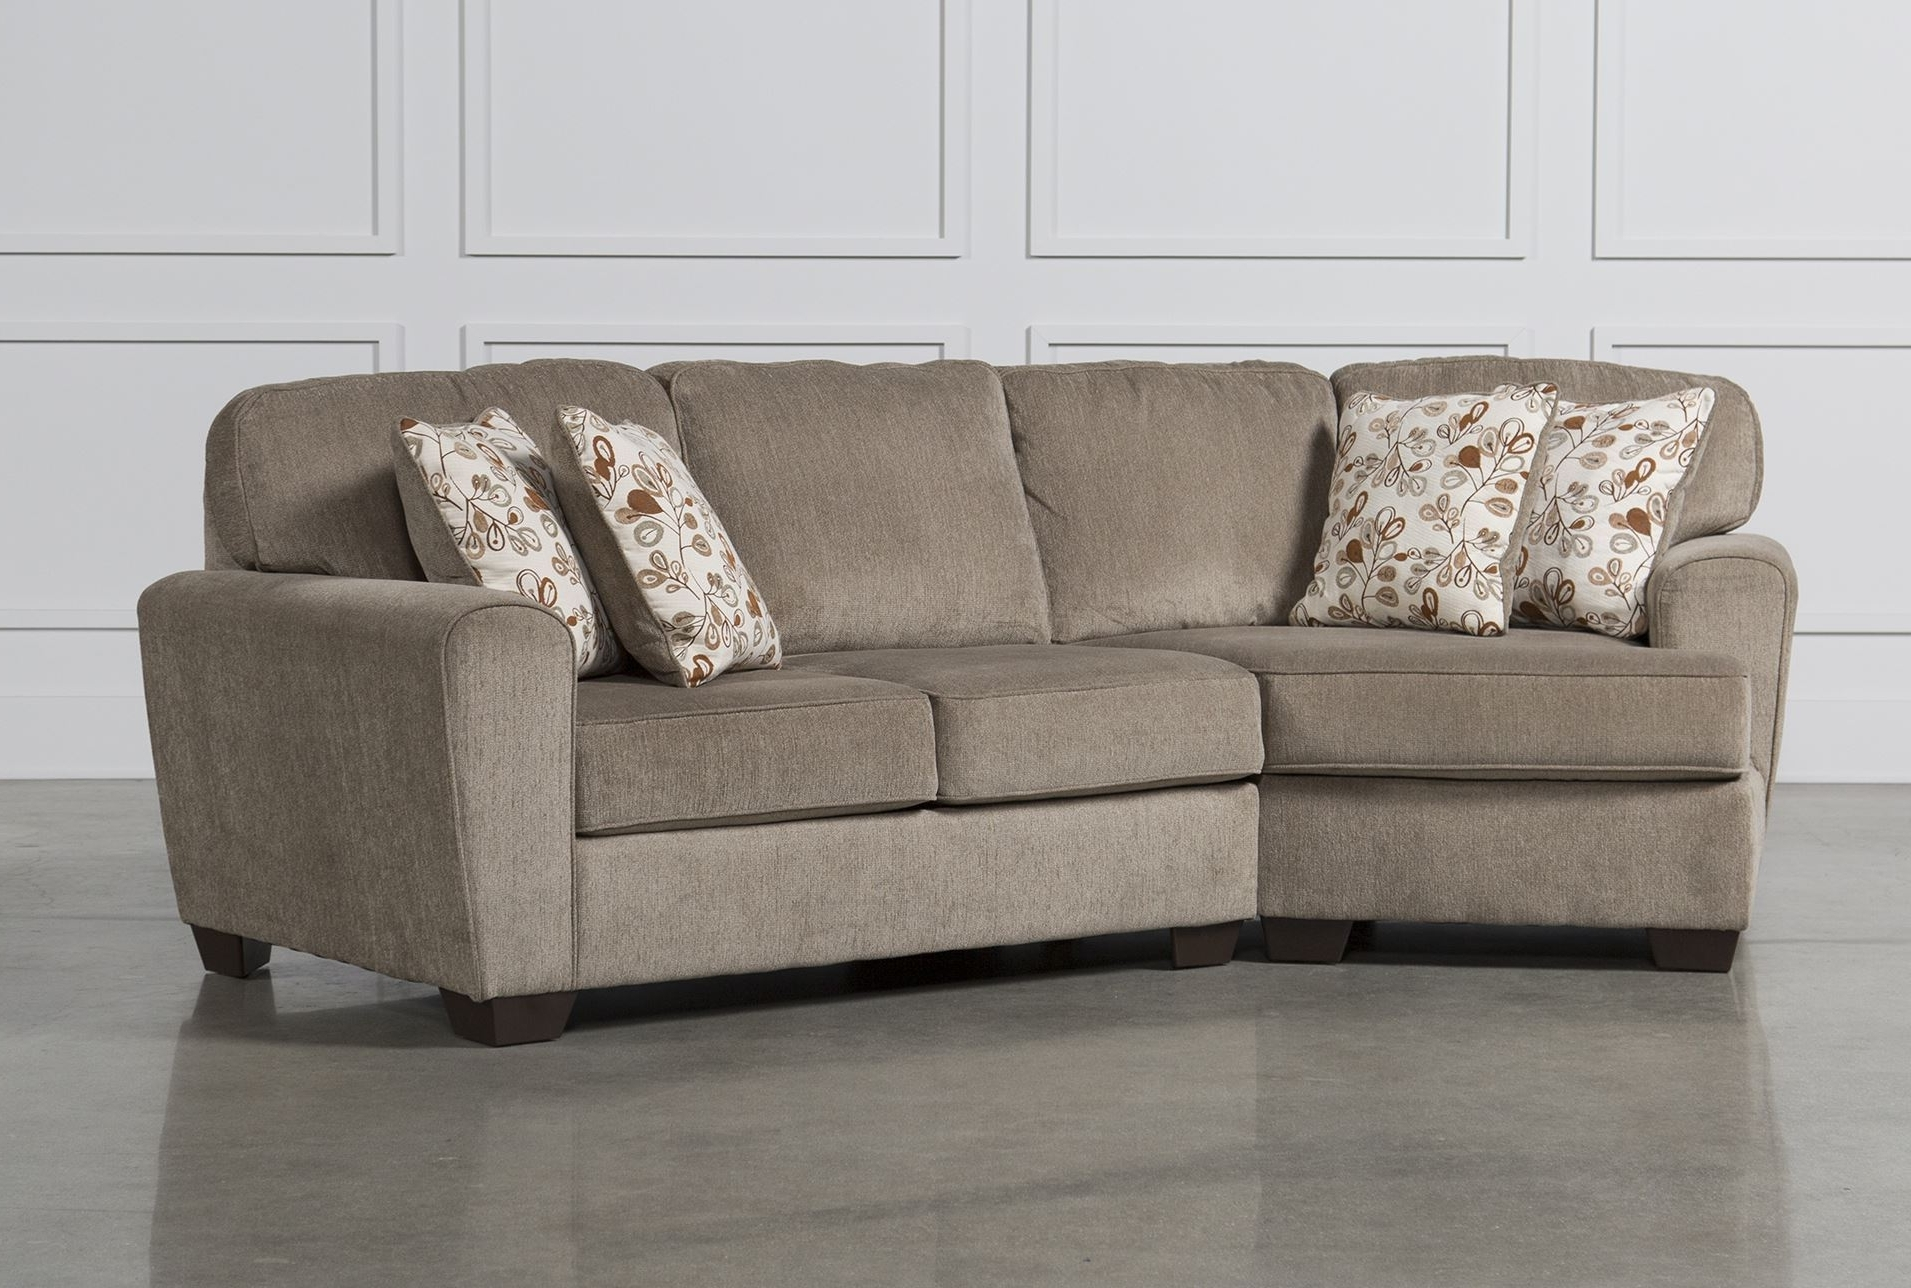 Popular Sectional Sofas With Cuddler Chaise In Latest Trend Of Sectional Sofa With Cuddler Chaise 81 In Eco (View 11 of 15)